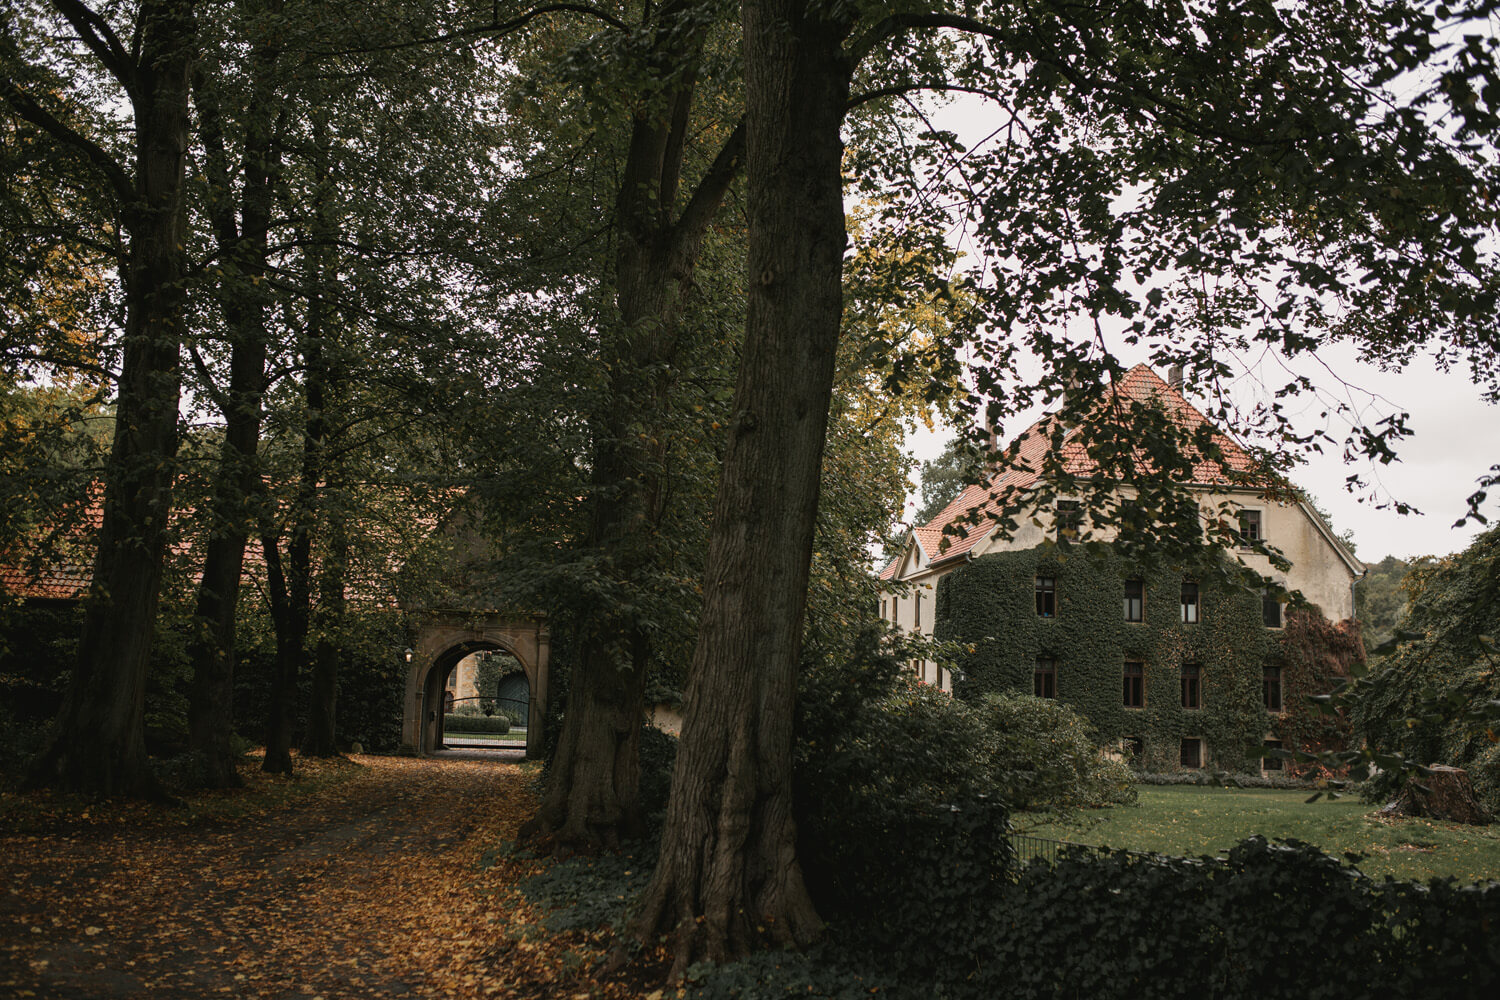 Location des Fotoshootings. Anwesen in Osnabrück.